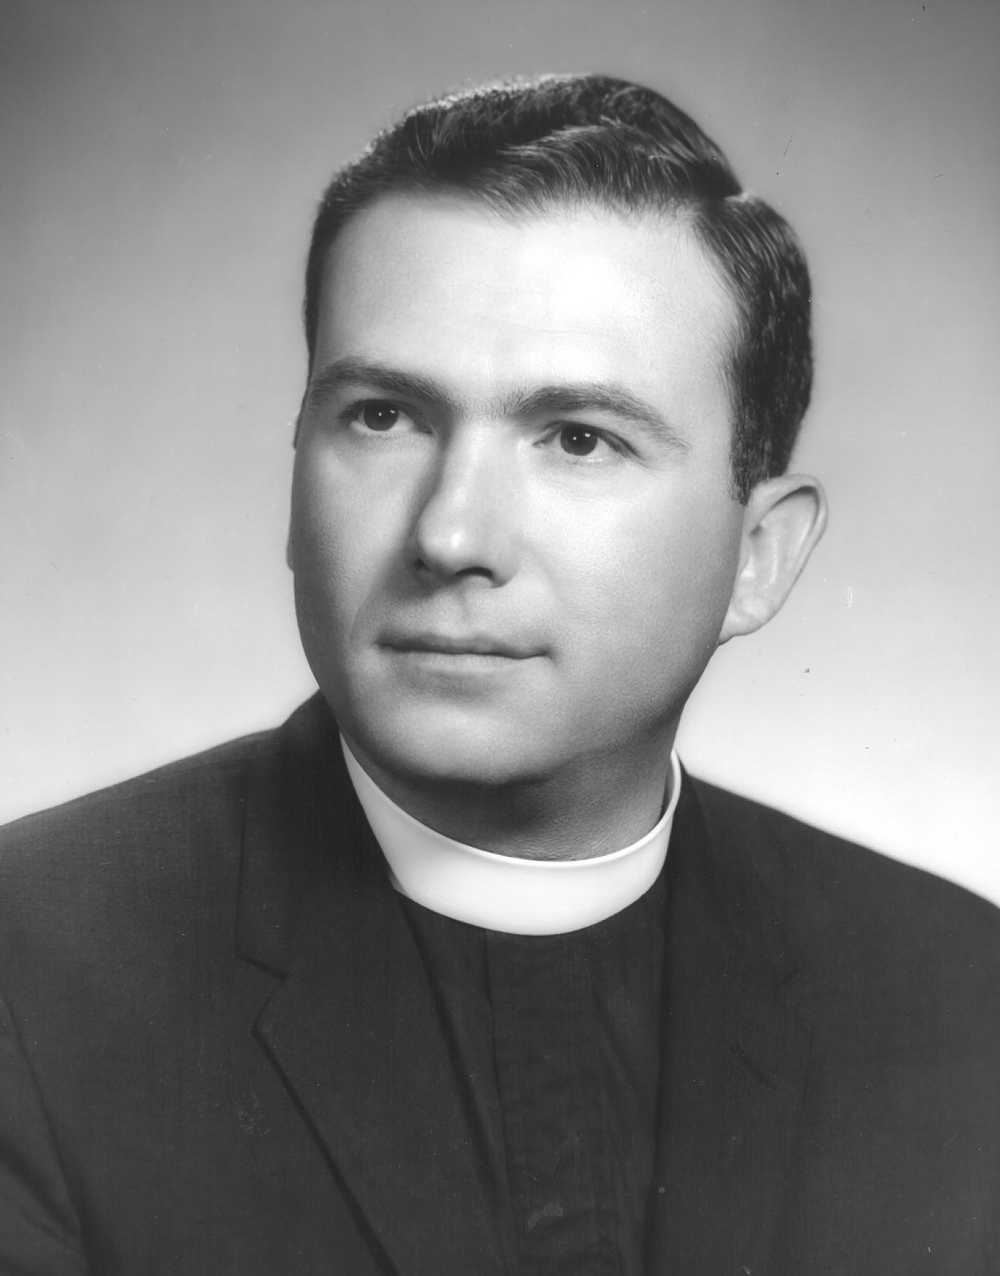 Thomas S. Bigelow - 2nd Vicar of St. Stephen's - July 1966-August 1968